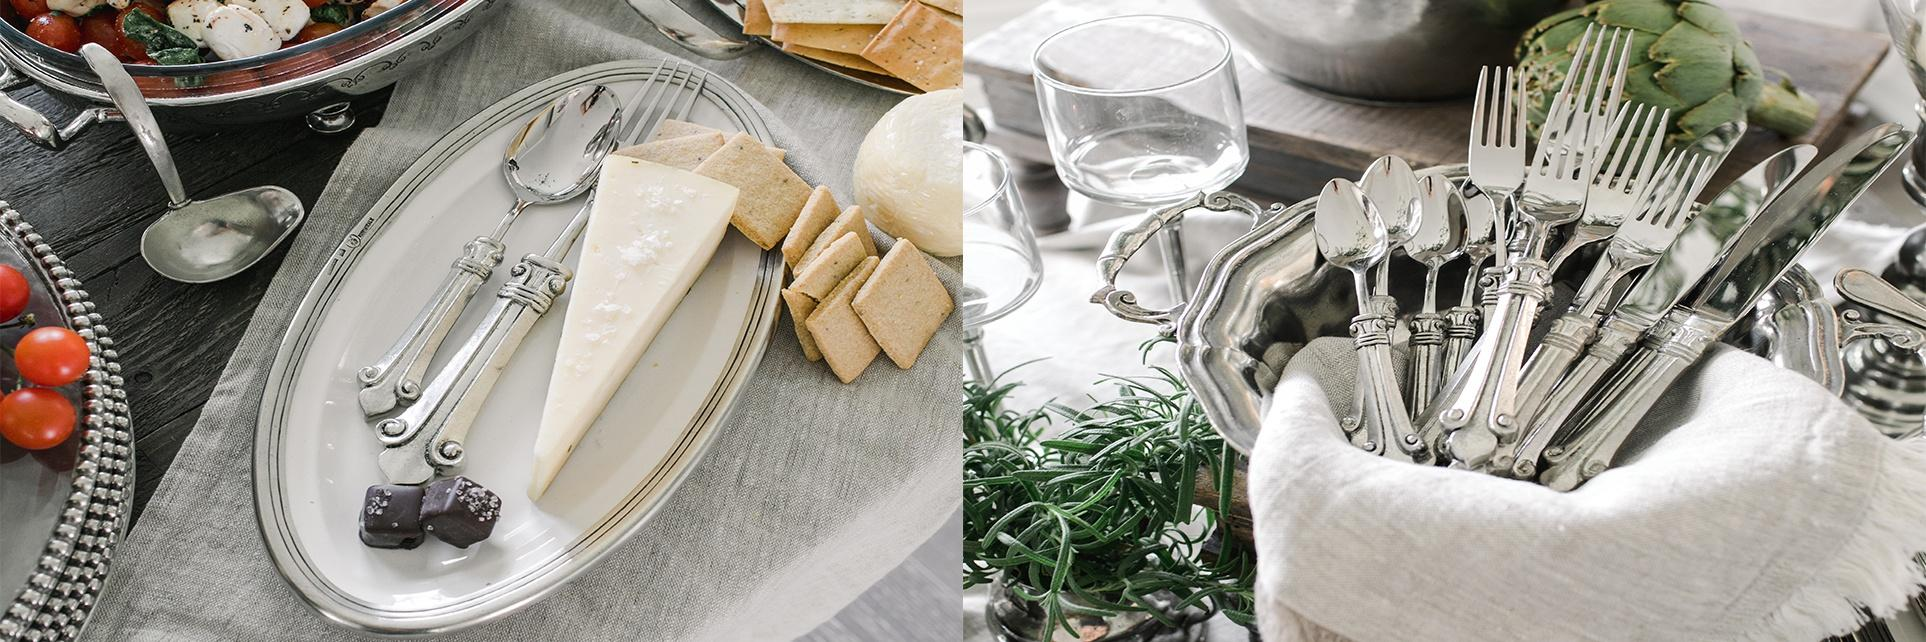 Lifestyle image 1 for Flatware